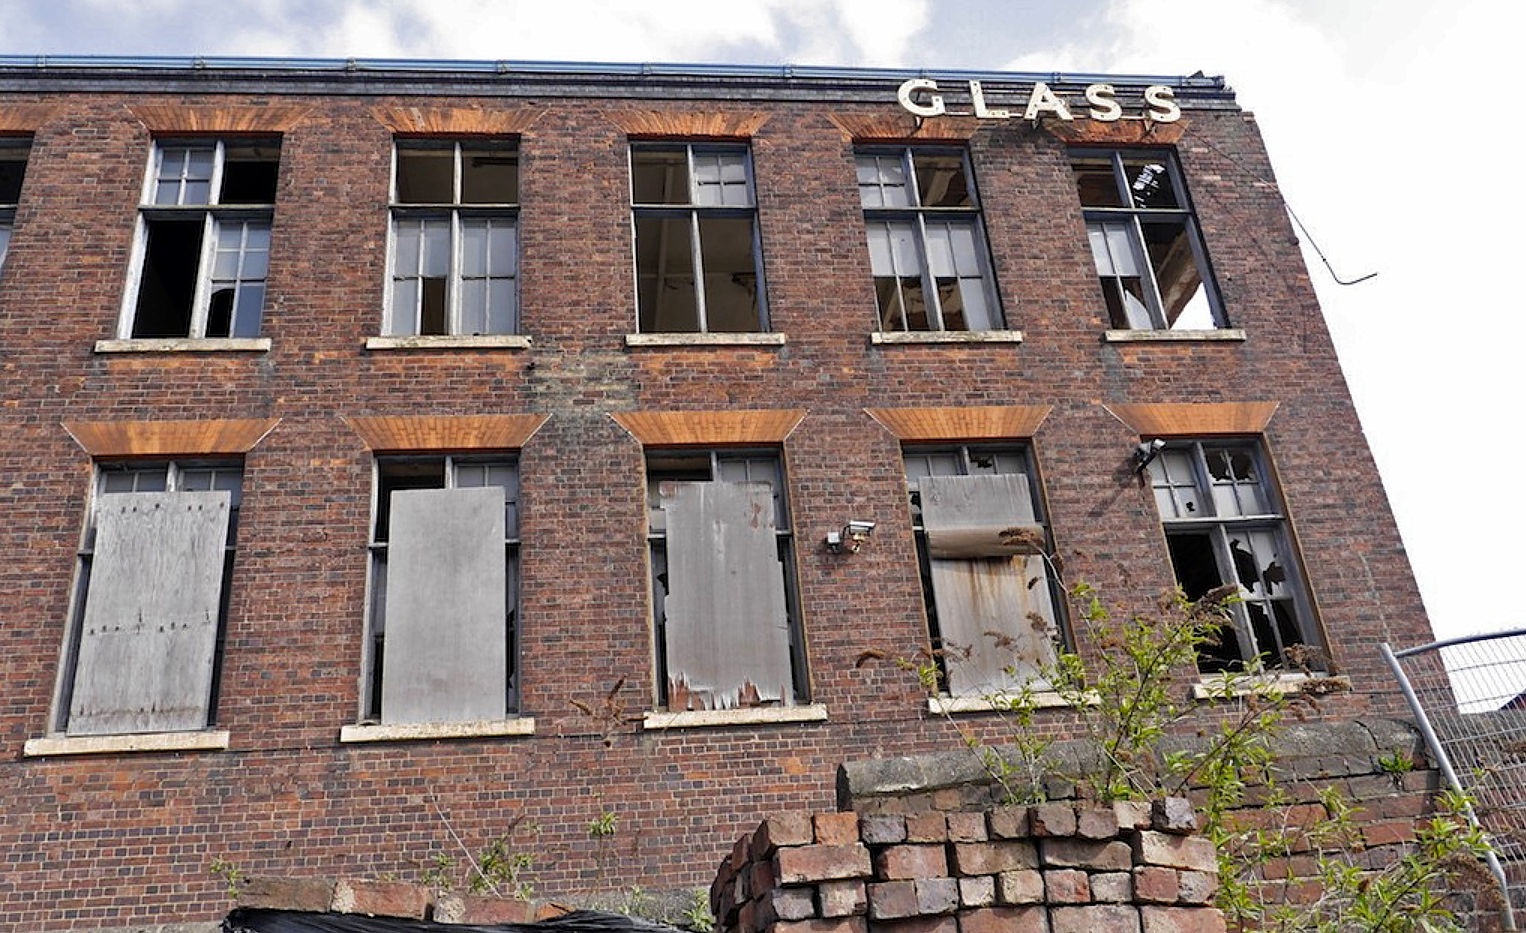 Chance Glassworks - Office Building